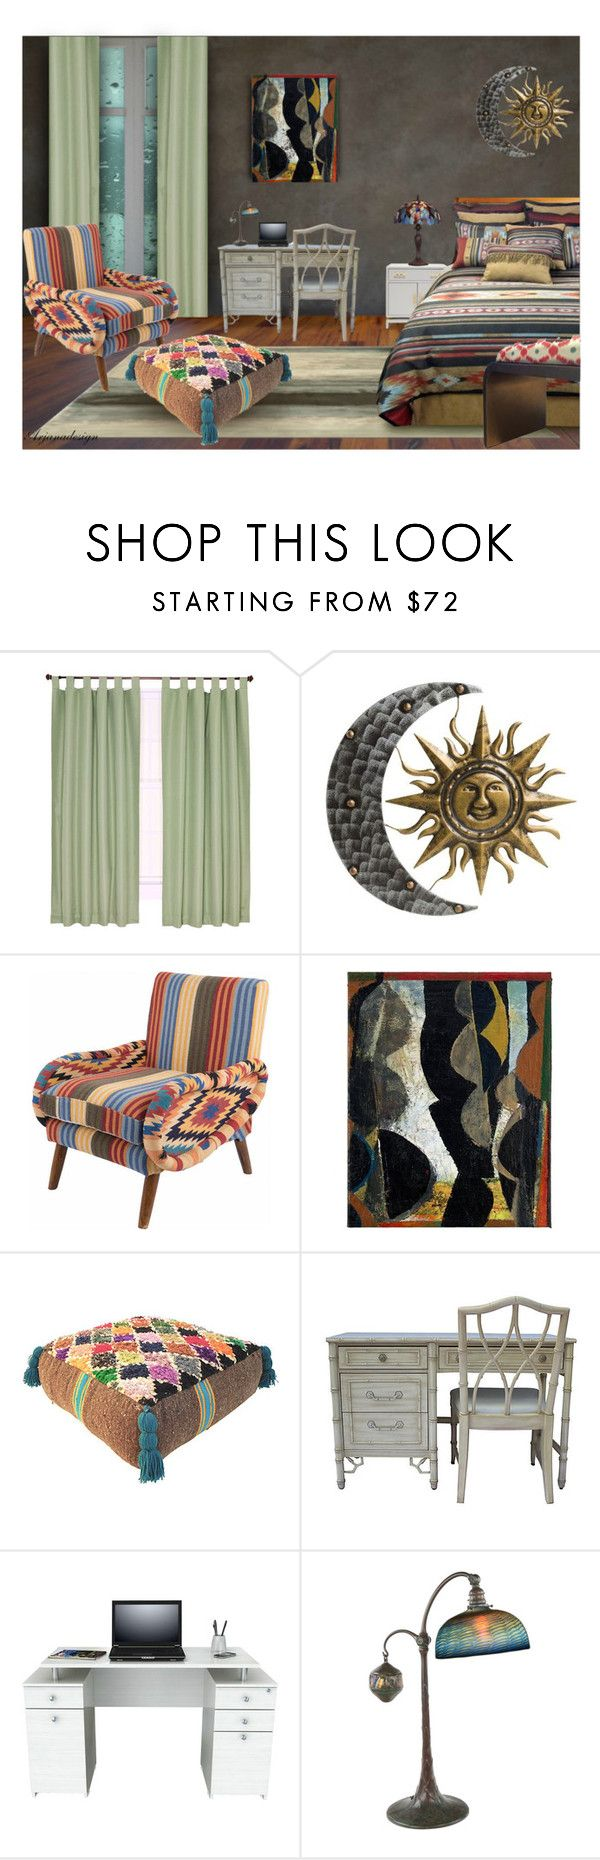 aztec bedroom by arjanadesign liked on polyvore featuring interior interiors interior